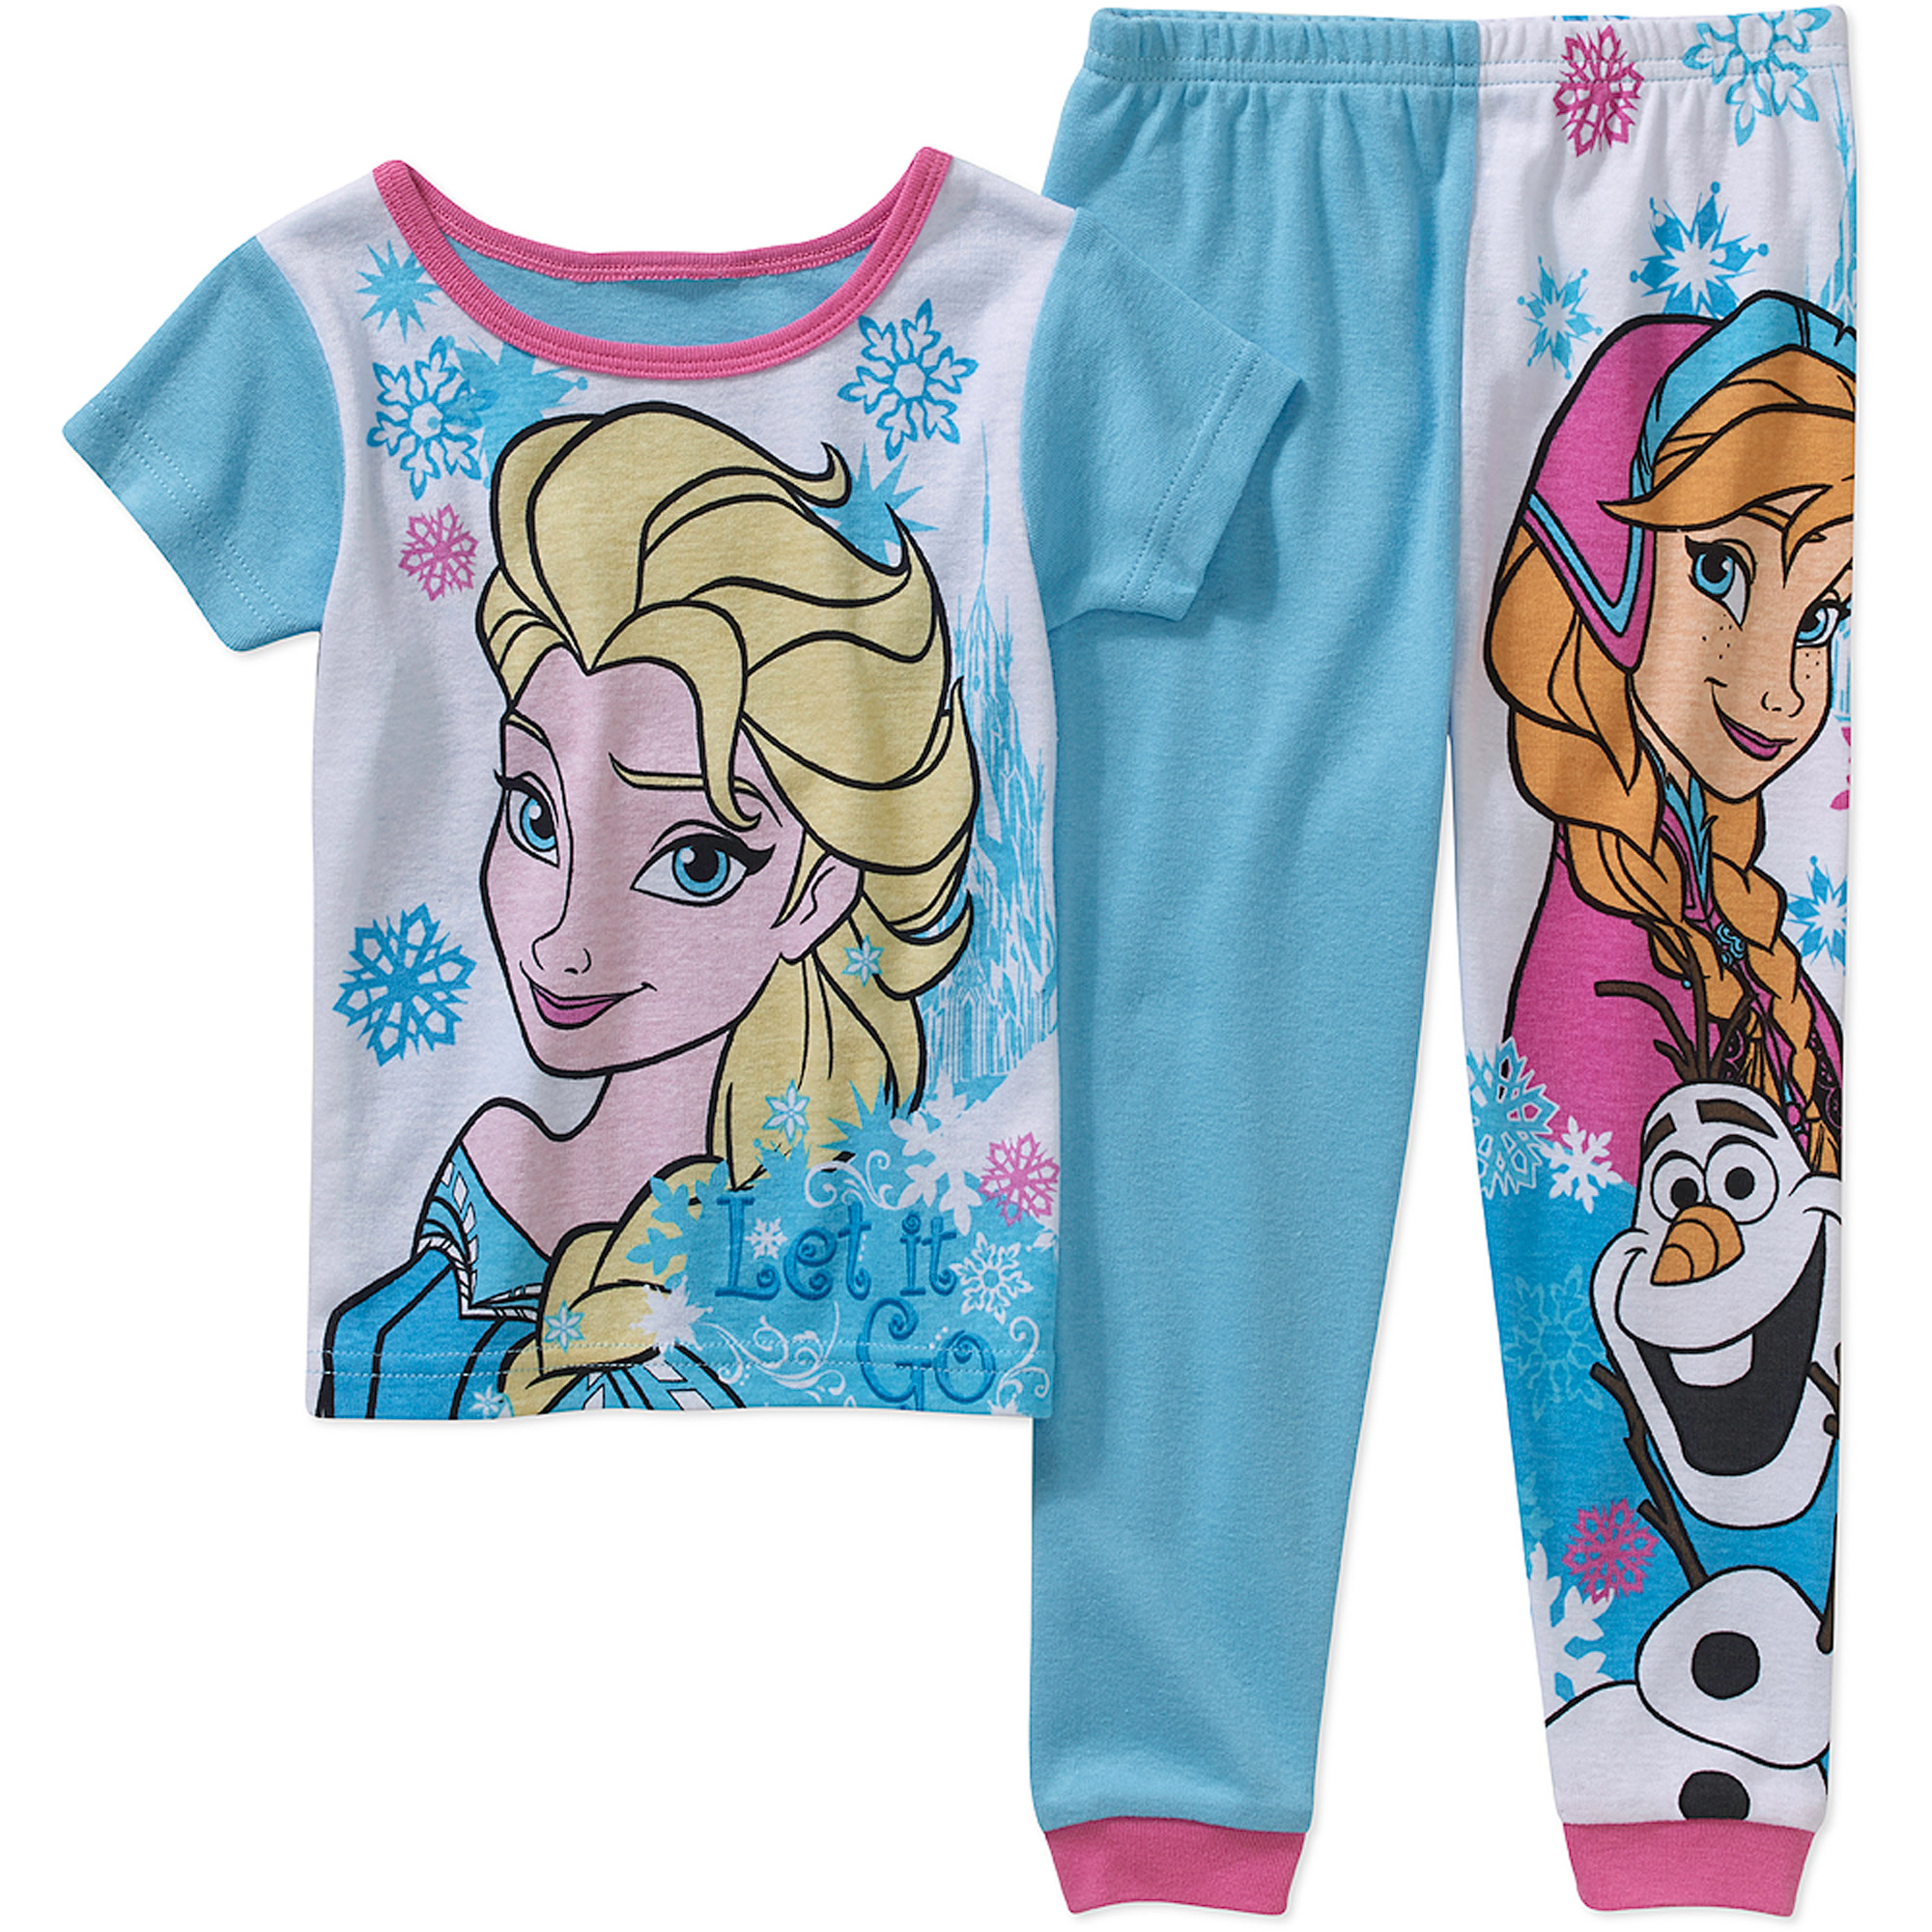 Disney Frozen Baby Toddler Girl Short Sleeve Cotton Tight Fit Sleepwear Set